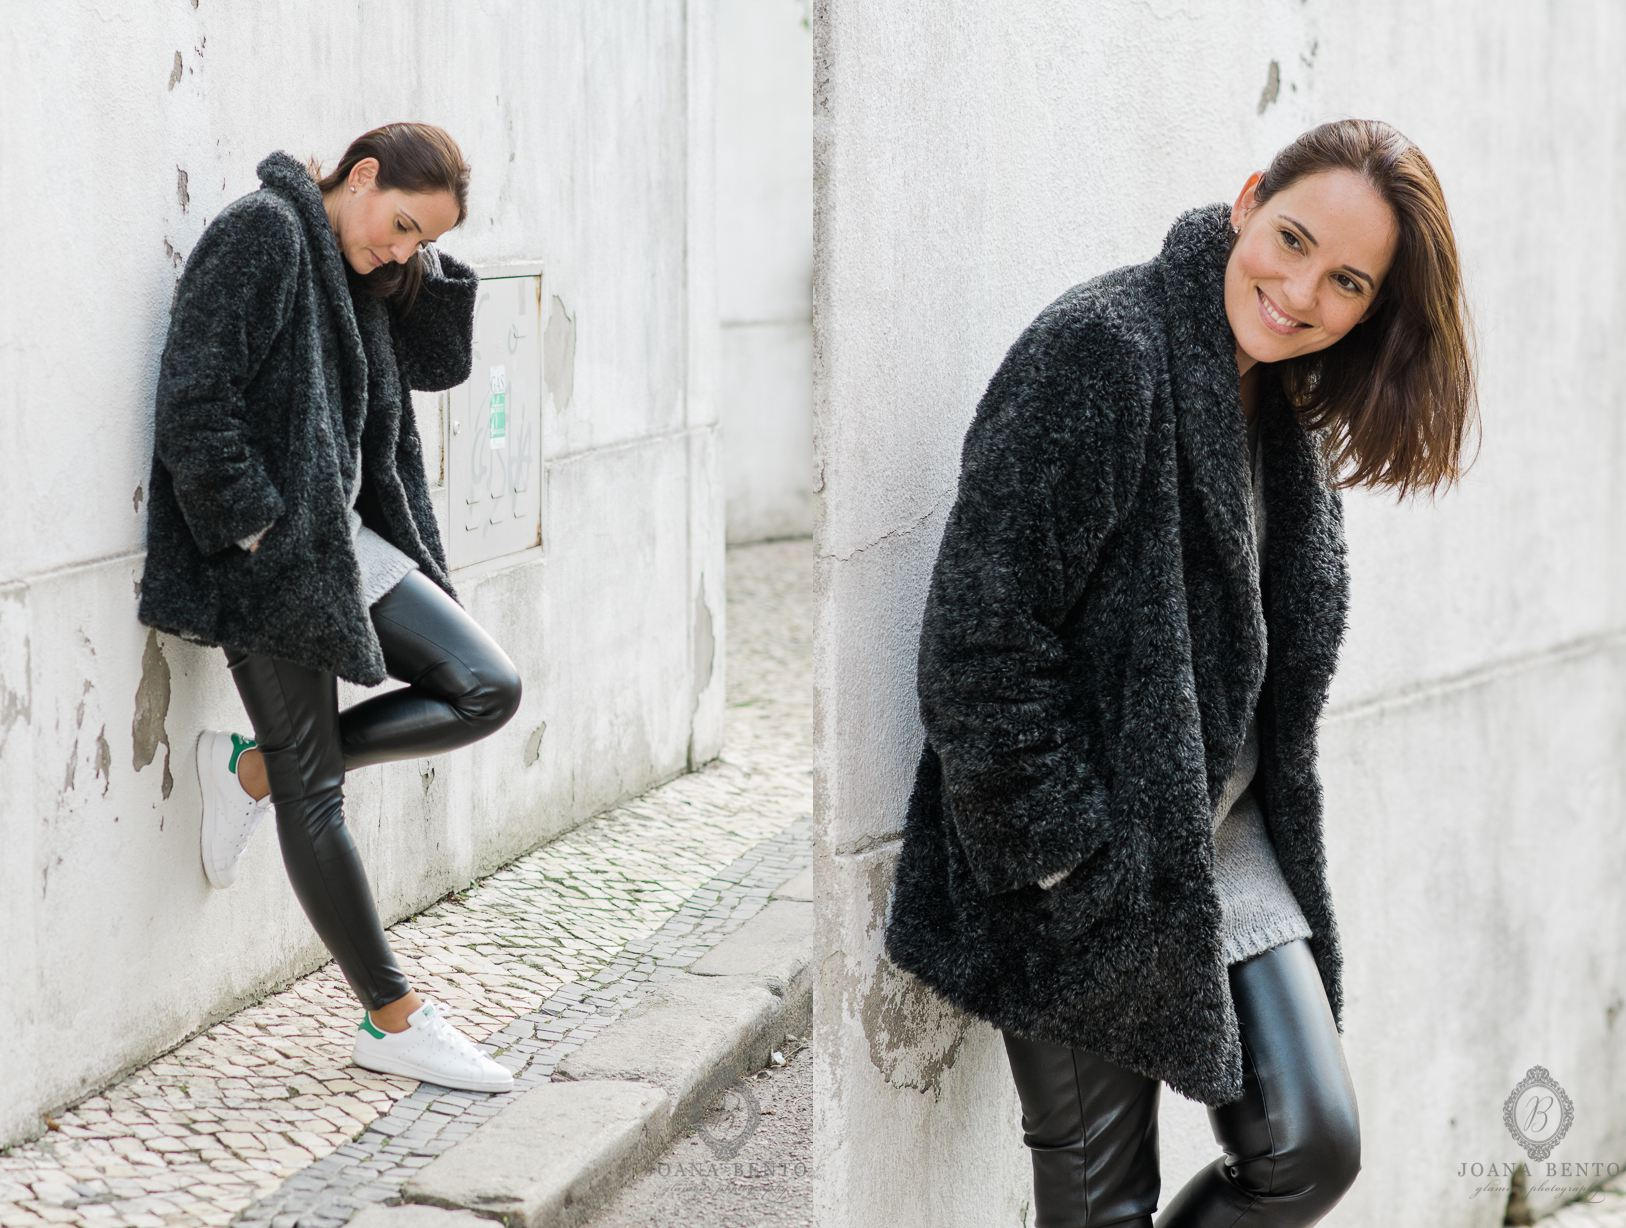 joana_bento_fake_fur_jacket.jpg